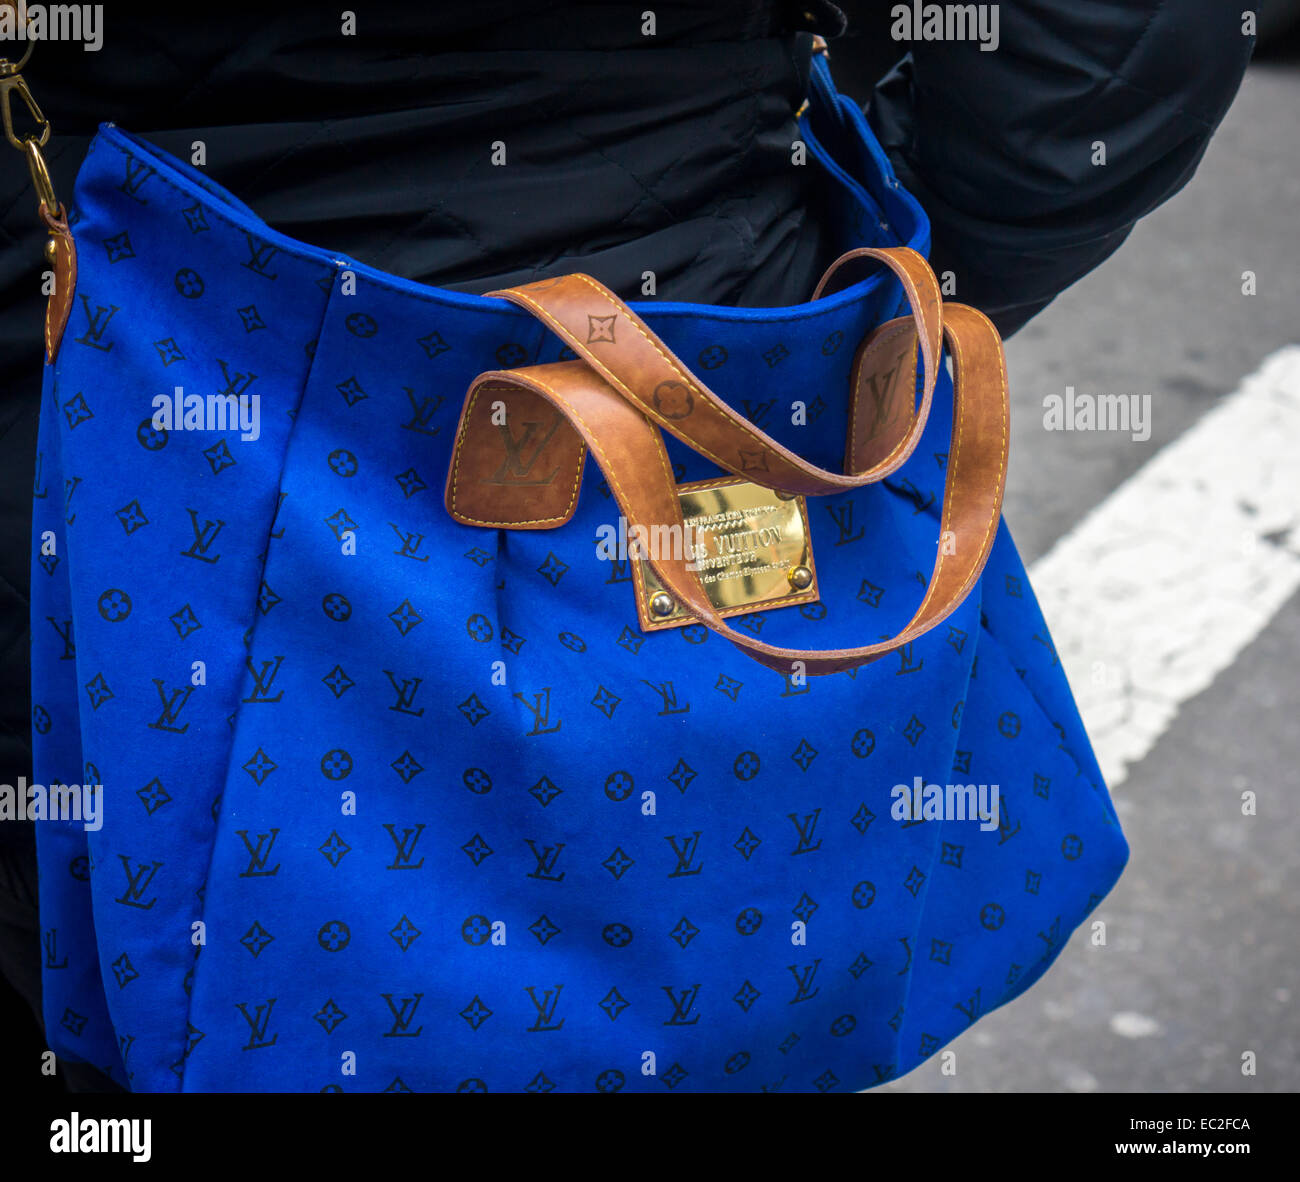 78f5cbbfd8a6 A woman carries a handbag with a Louis Vuitton label in New York on  Thursday